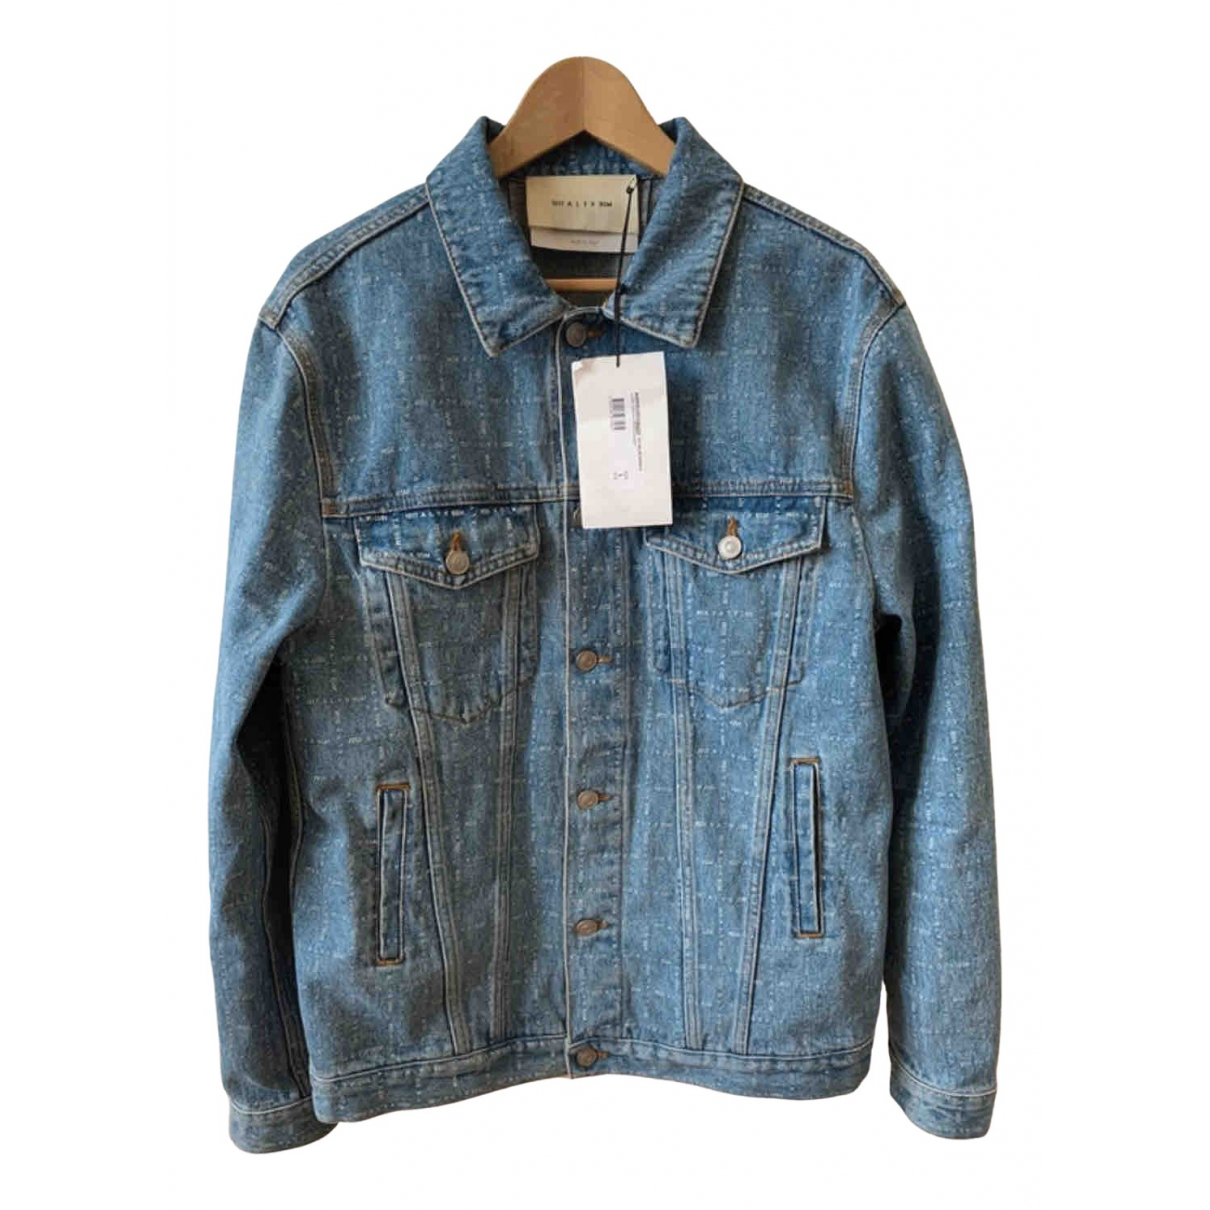 Alyx \N Blue Denim - Jeans jacket  for Men L International